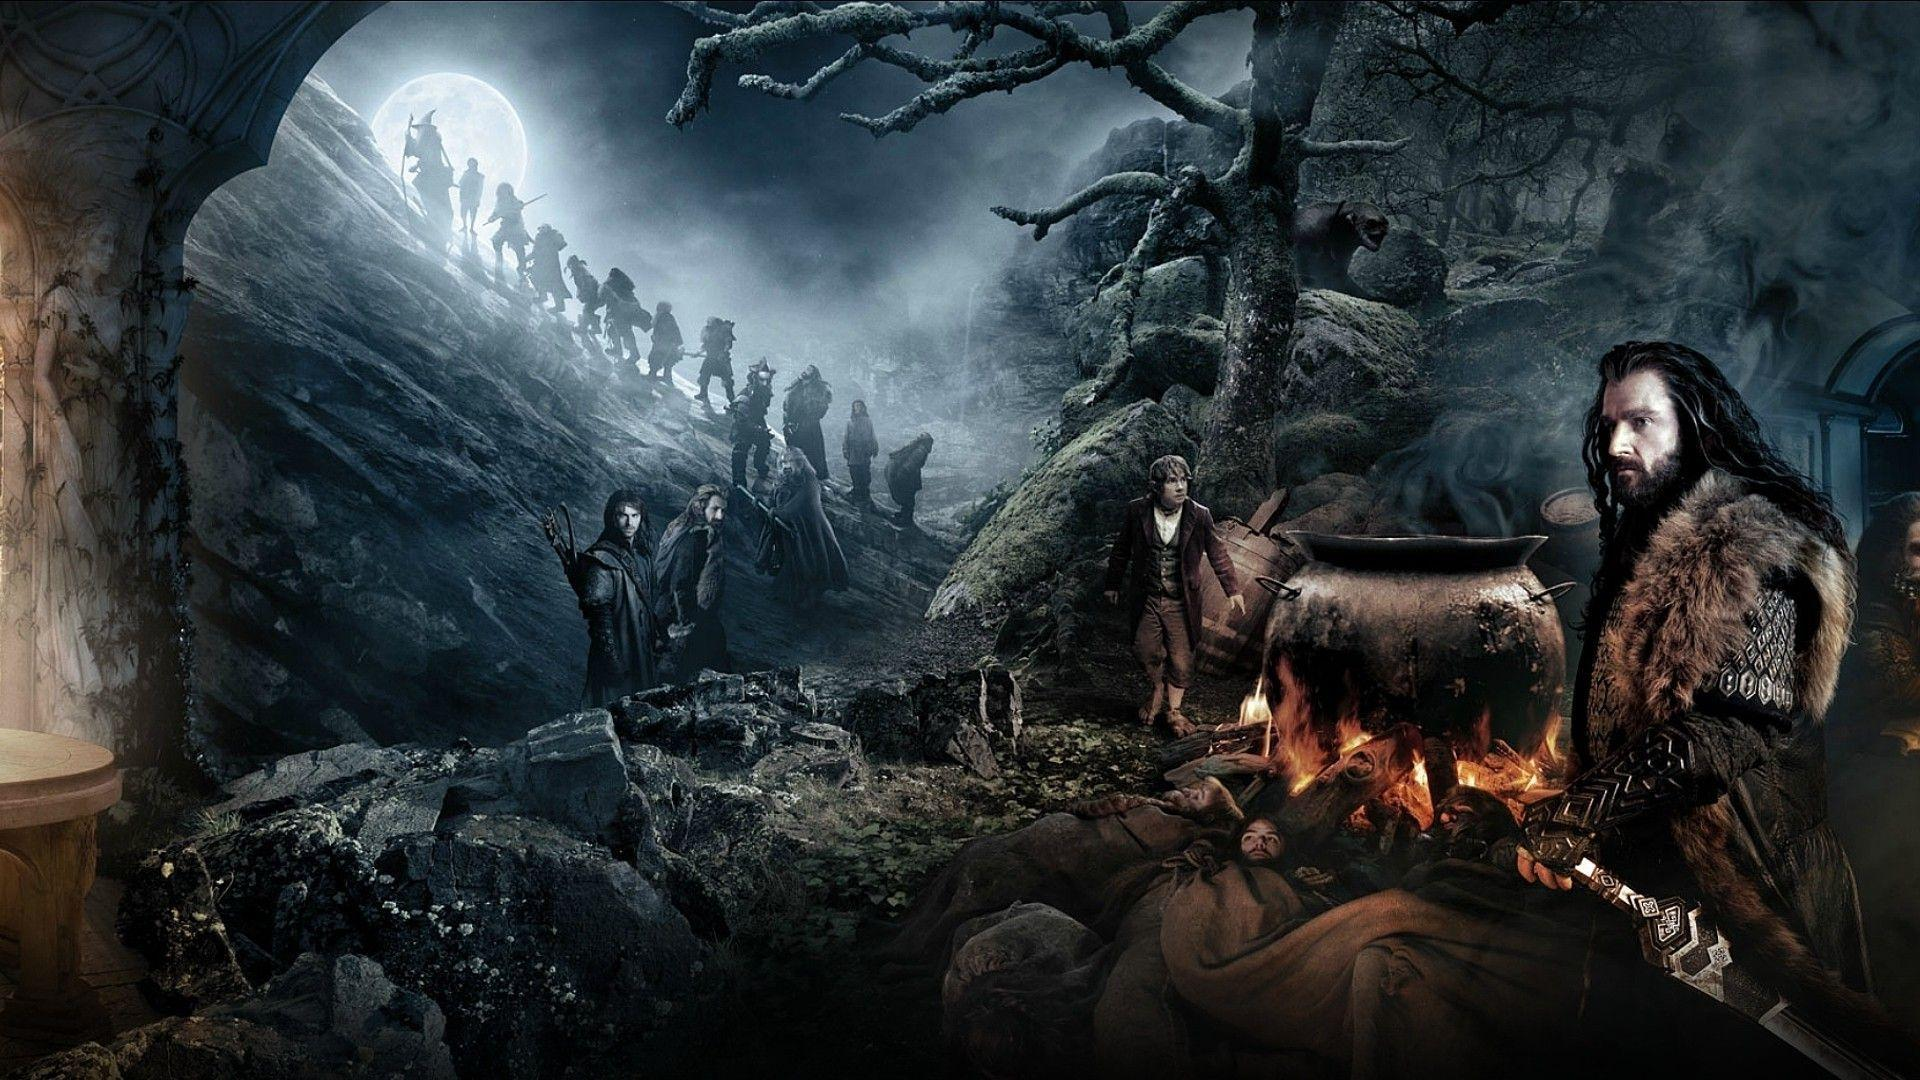 The Hobbit - An Unexpected Journey Wallpaper #